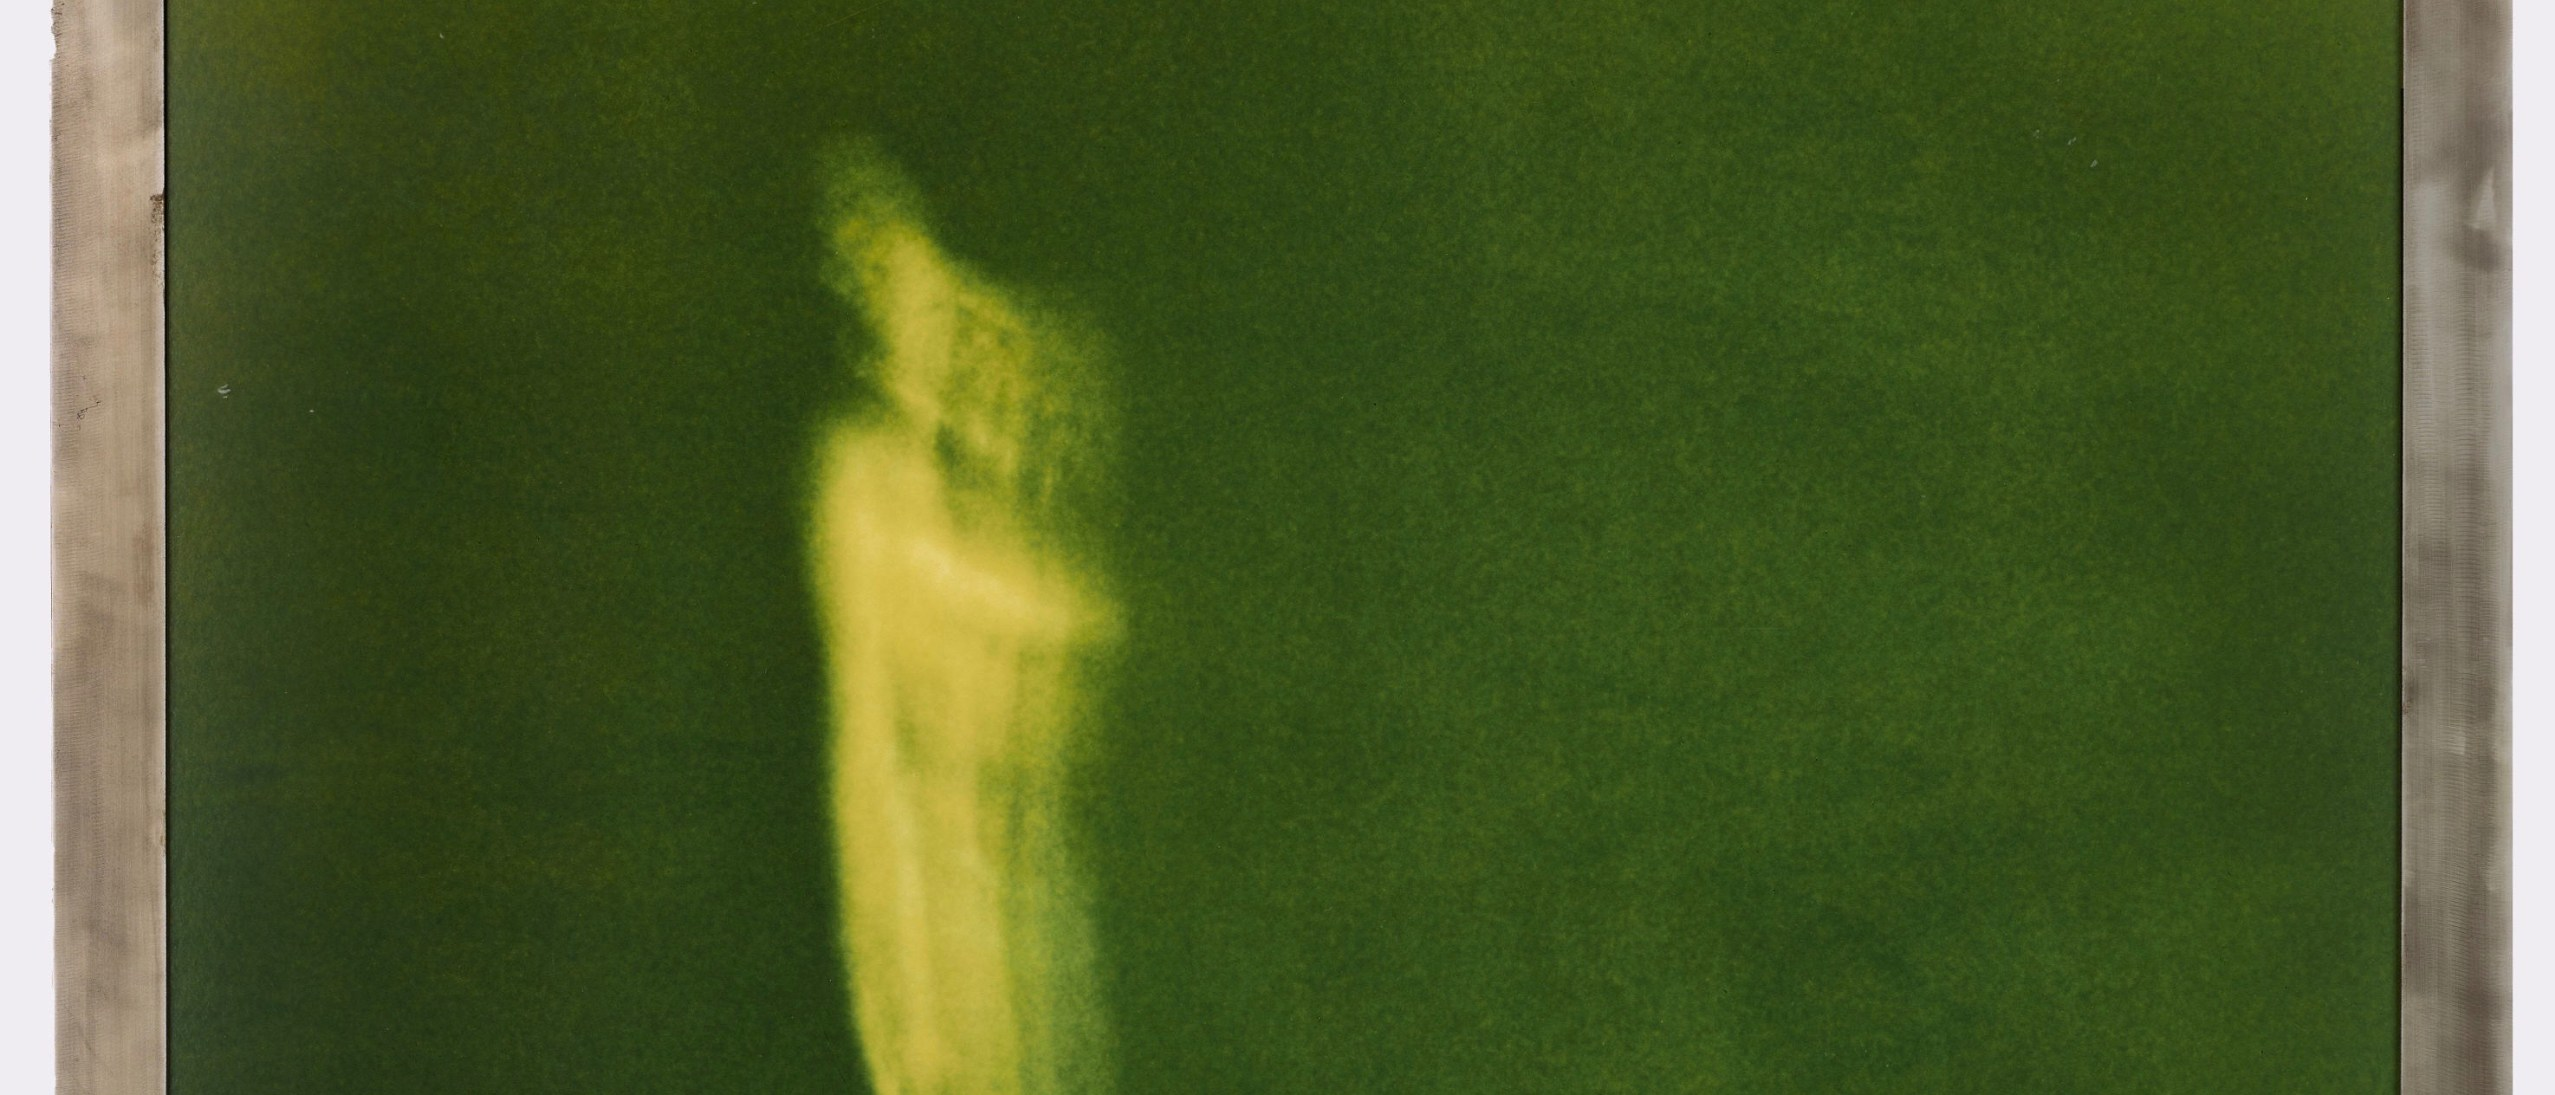 A vaguely humanoid figure (of which the upper two thirds can be seen), distinguished by a light green hue, floats in a hazy dark green background